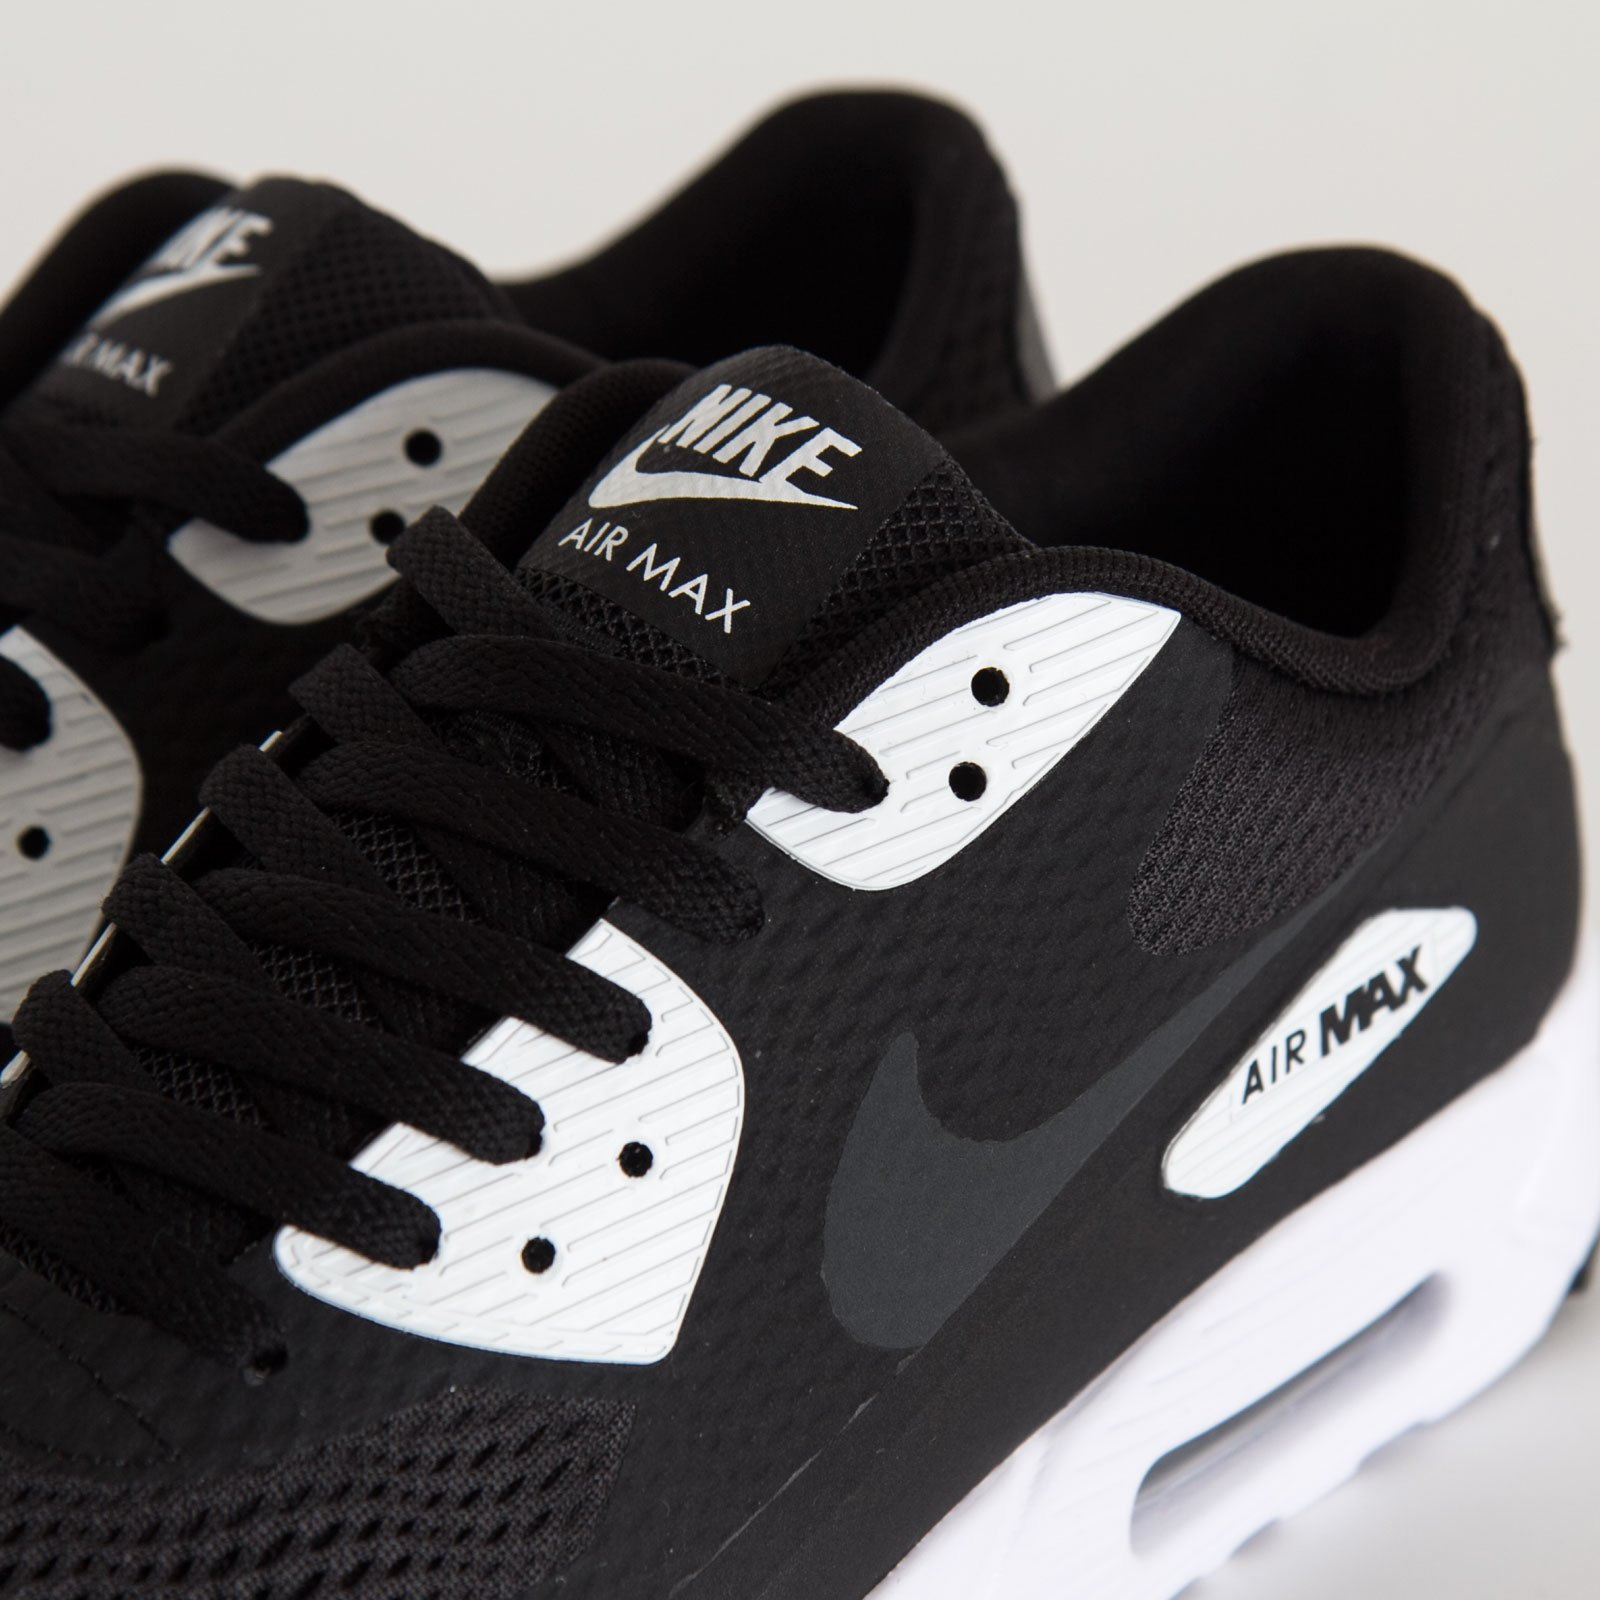 best cheap da4ed f5bf7 Nike Air Max 90 Ultra Essential - 819474-001 - Sneakersnstuff   sneakers    streetwear online since 1999